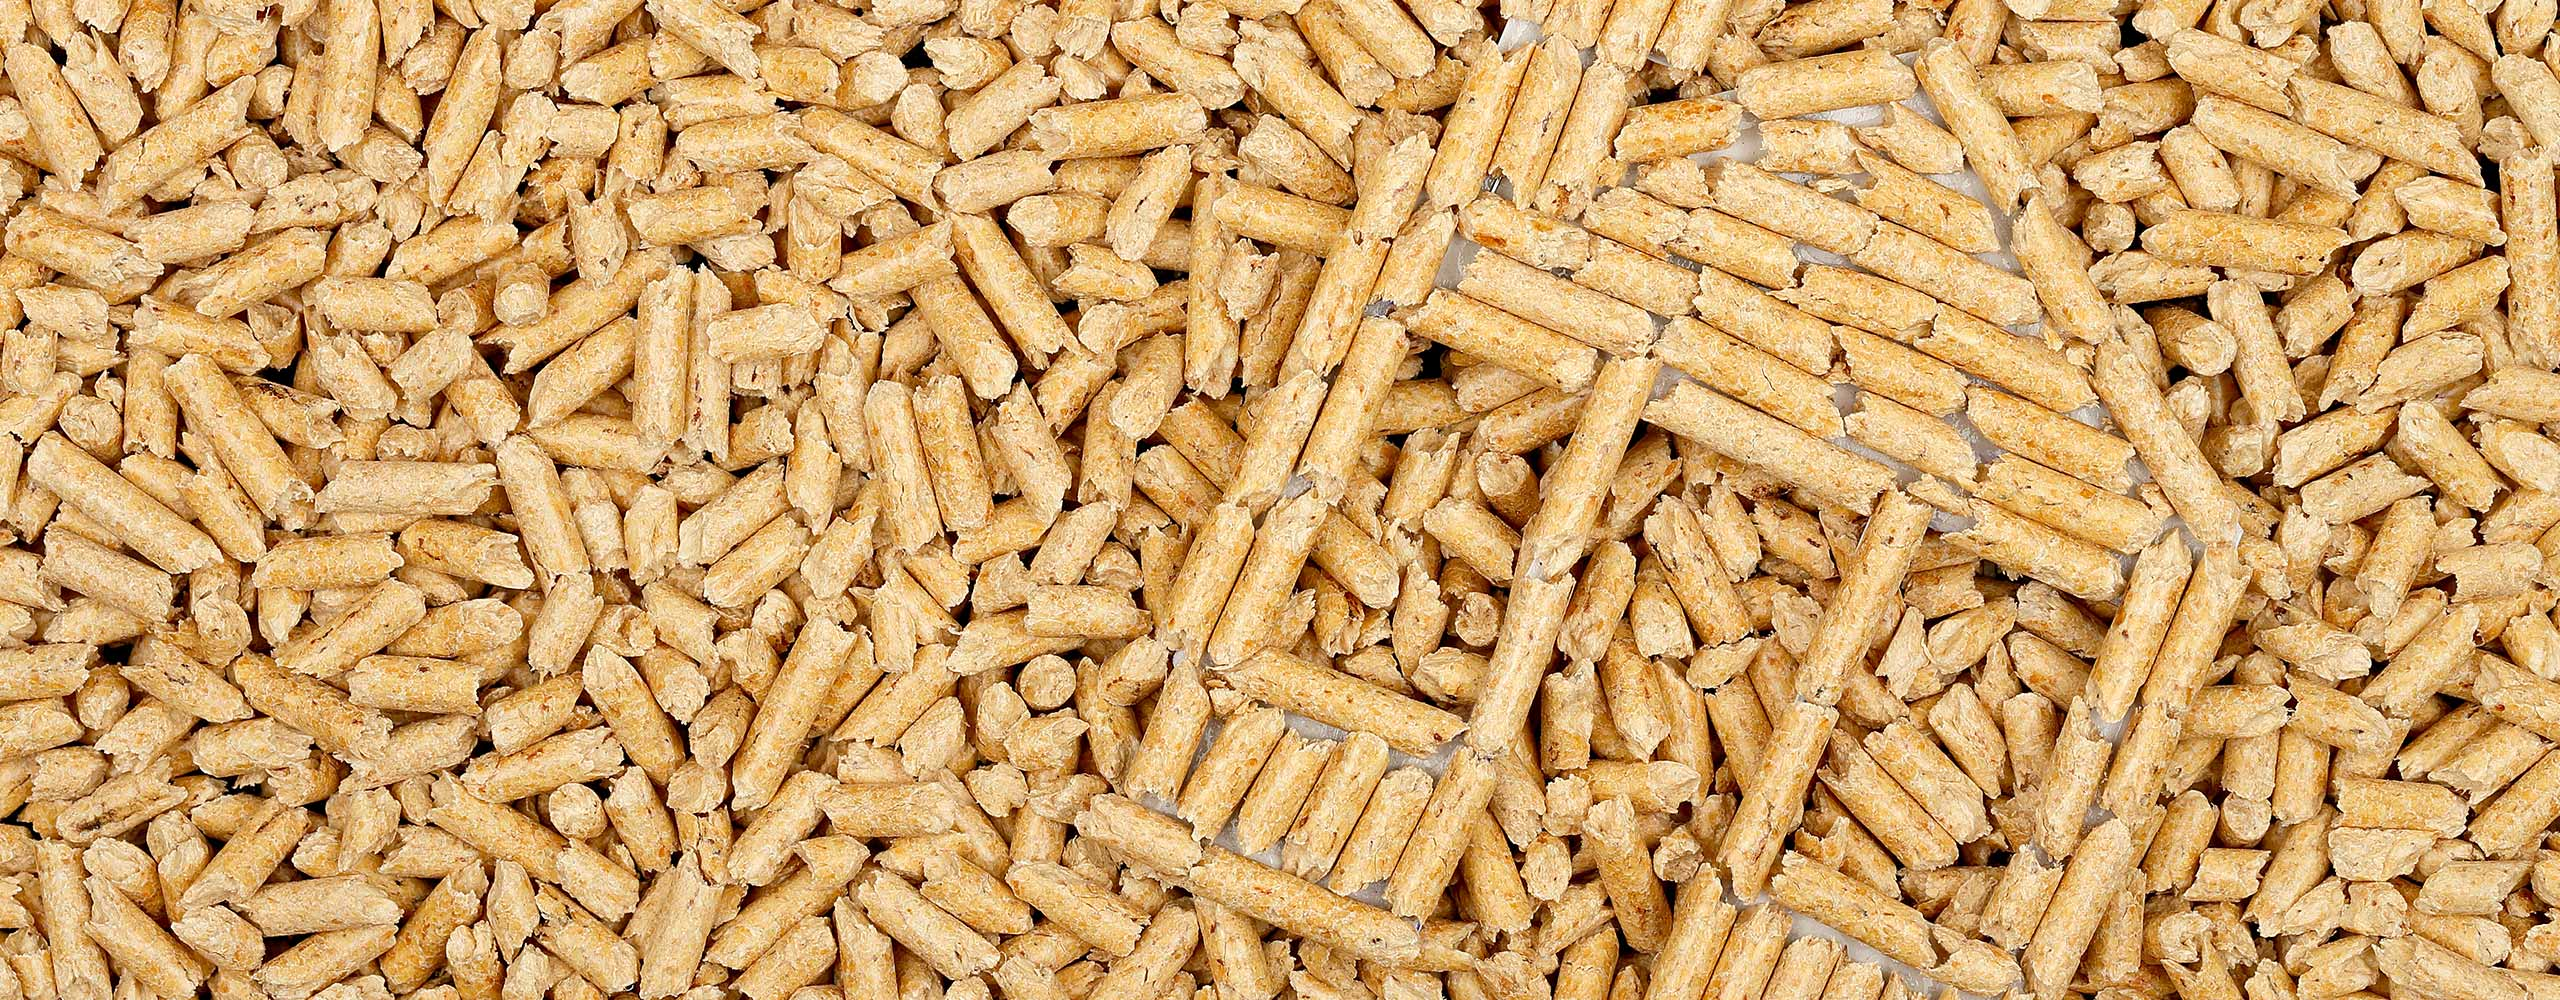 Buy Wood Pellets By The Ton